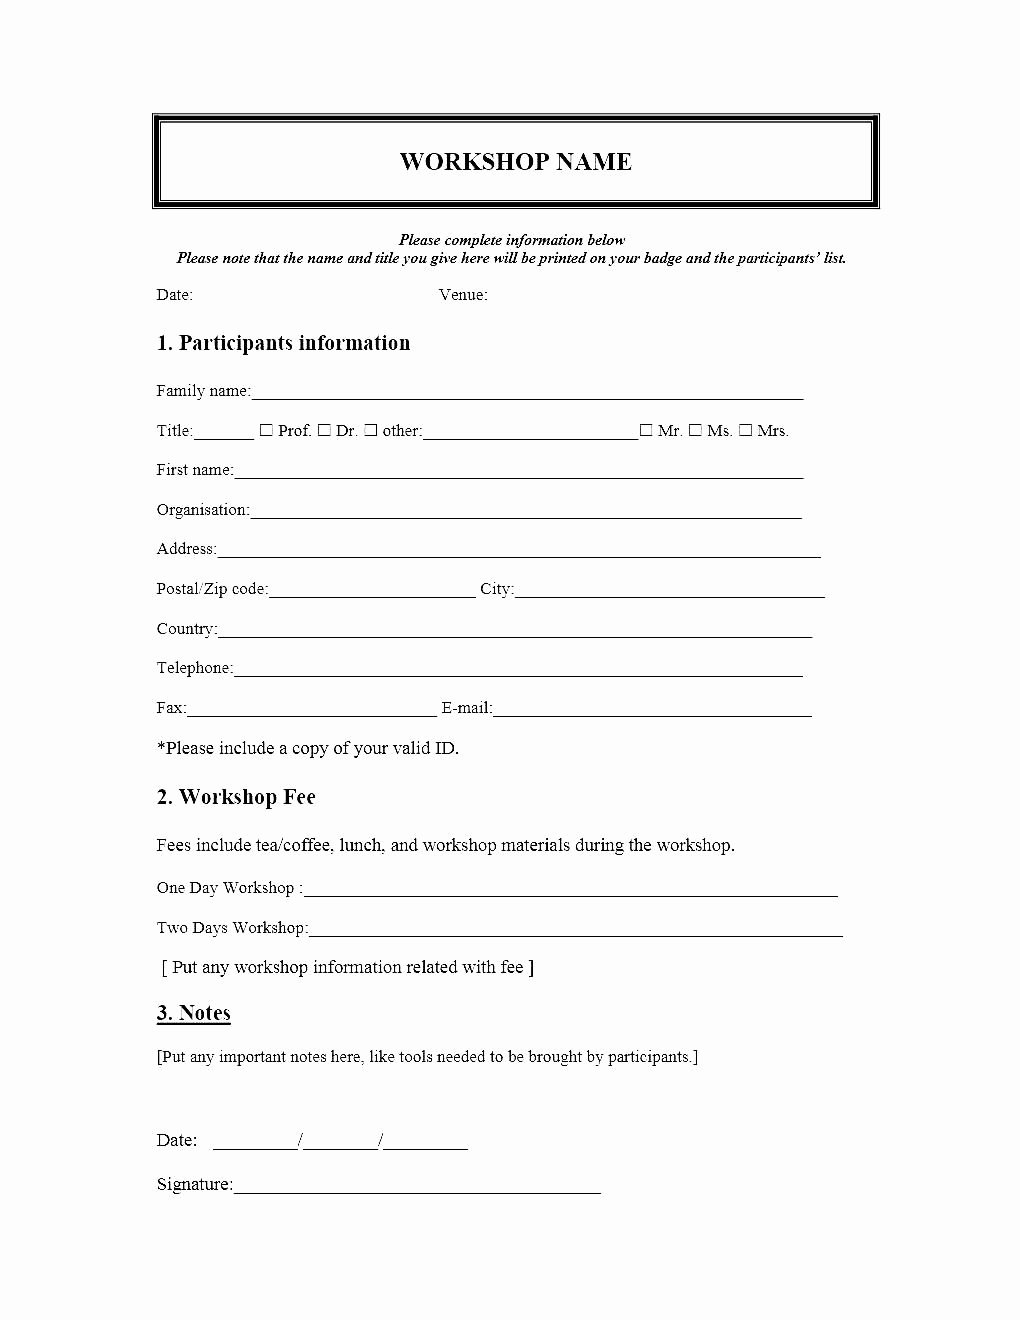 Conference Registration forms Template Lovely event Registration form Template Microsoft Word